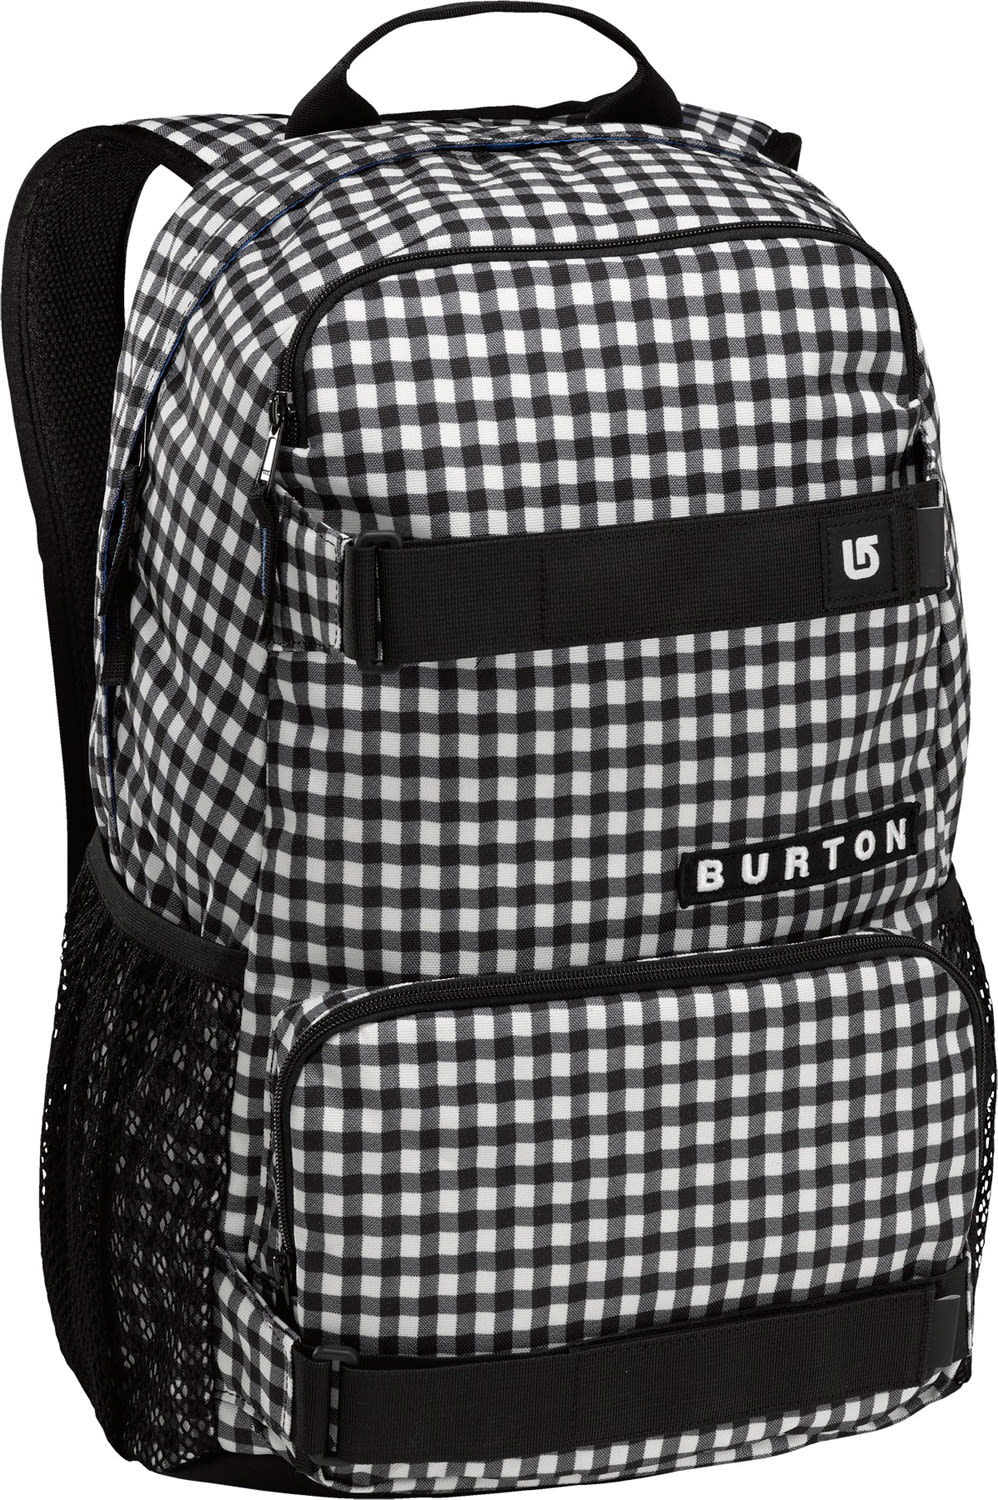 Burton Treble Yell Backpack Wrinkled Gingham